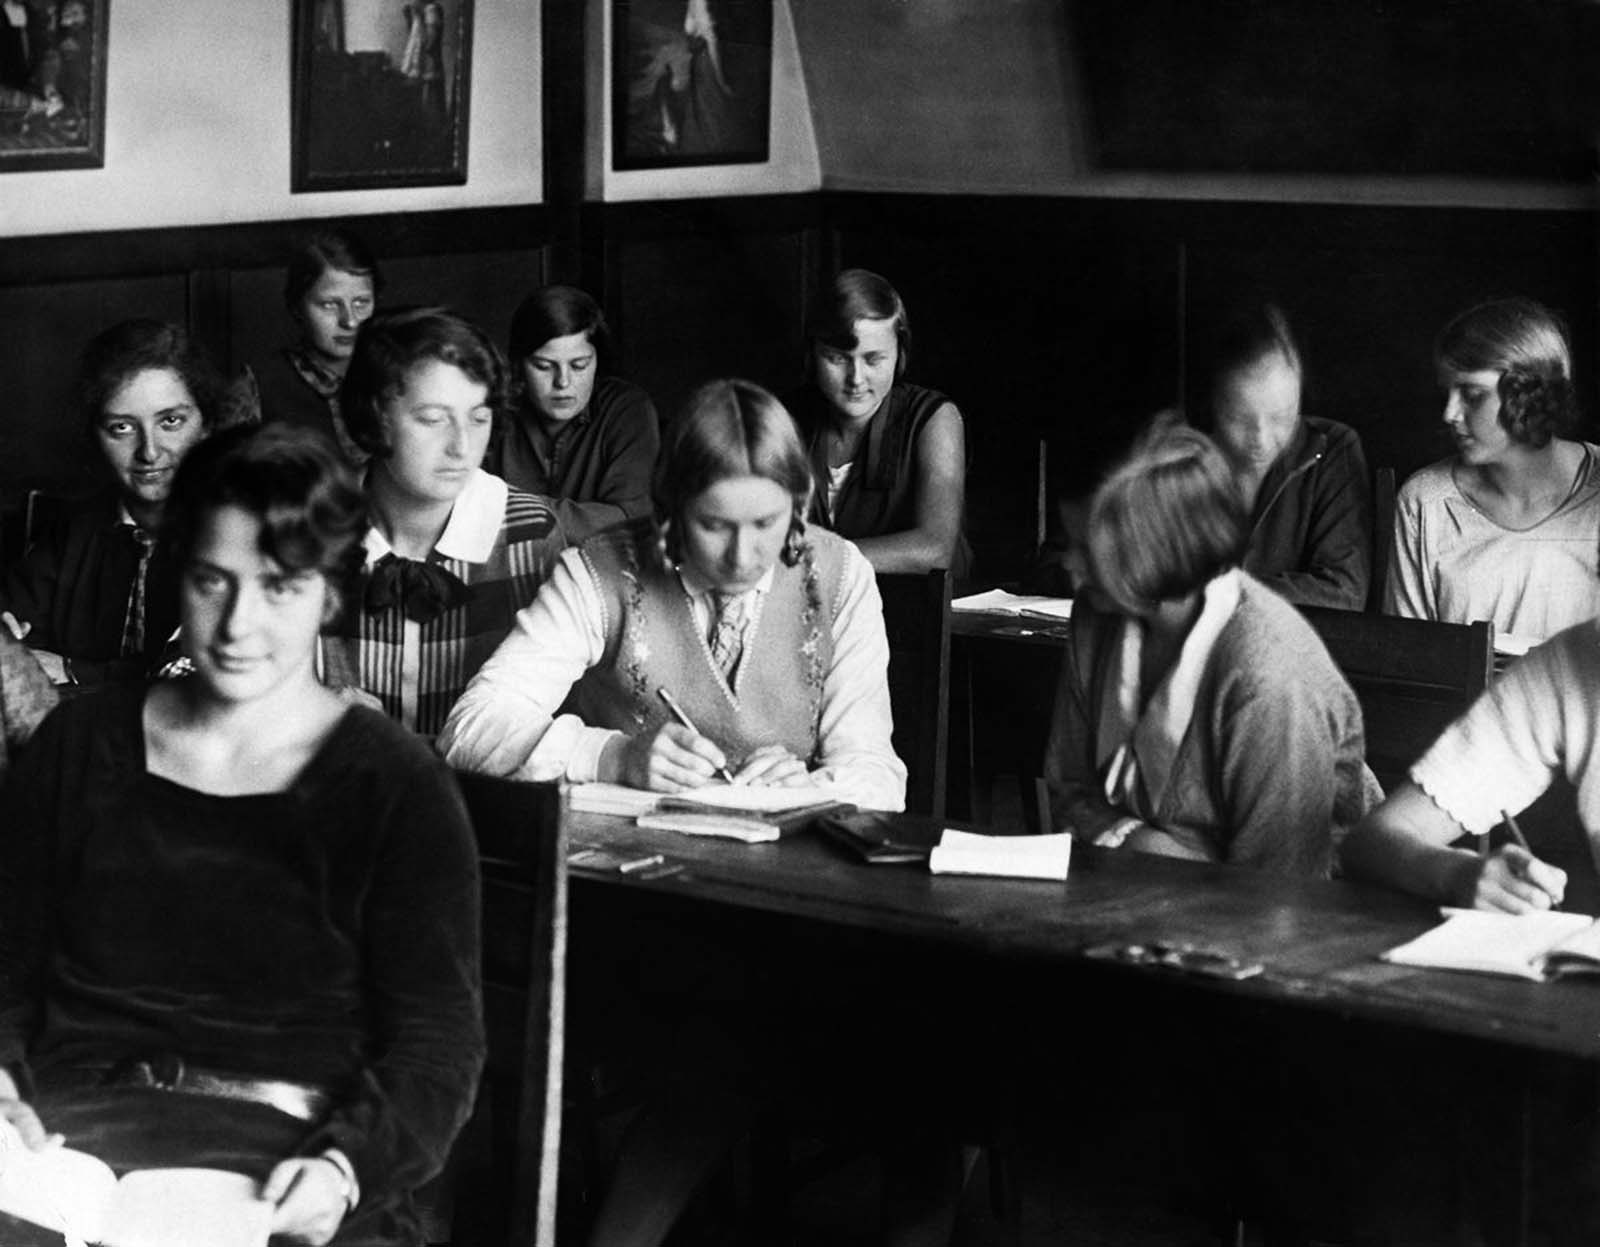 Mayer at school in Germany. 1928.